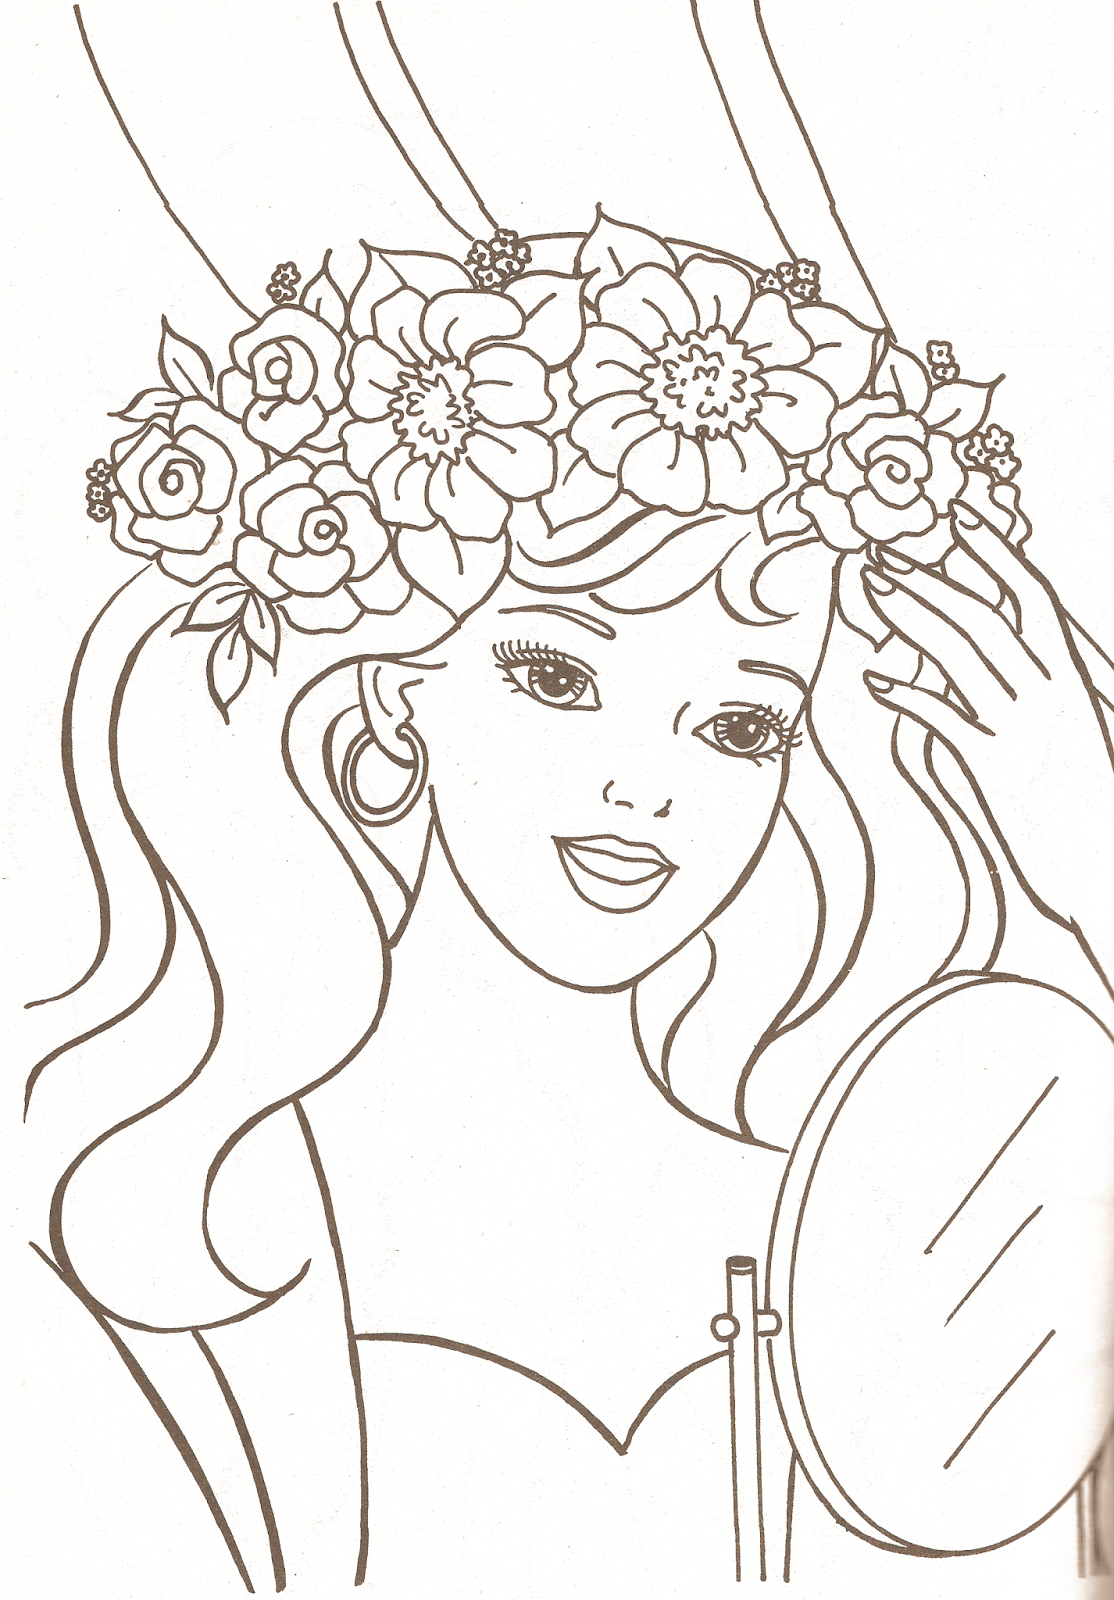 Miss Missy Paper Dolls: Barbie Coloring Pages Part 1 à Visage À Colorier